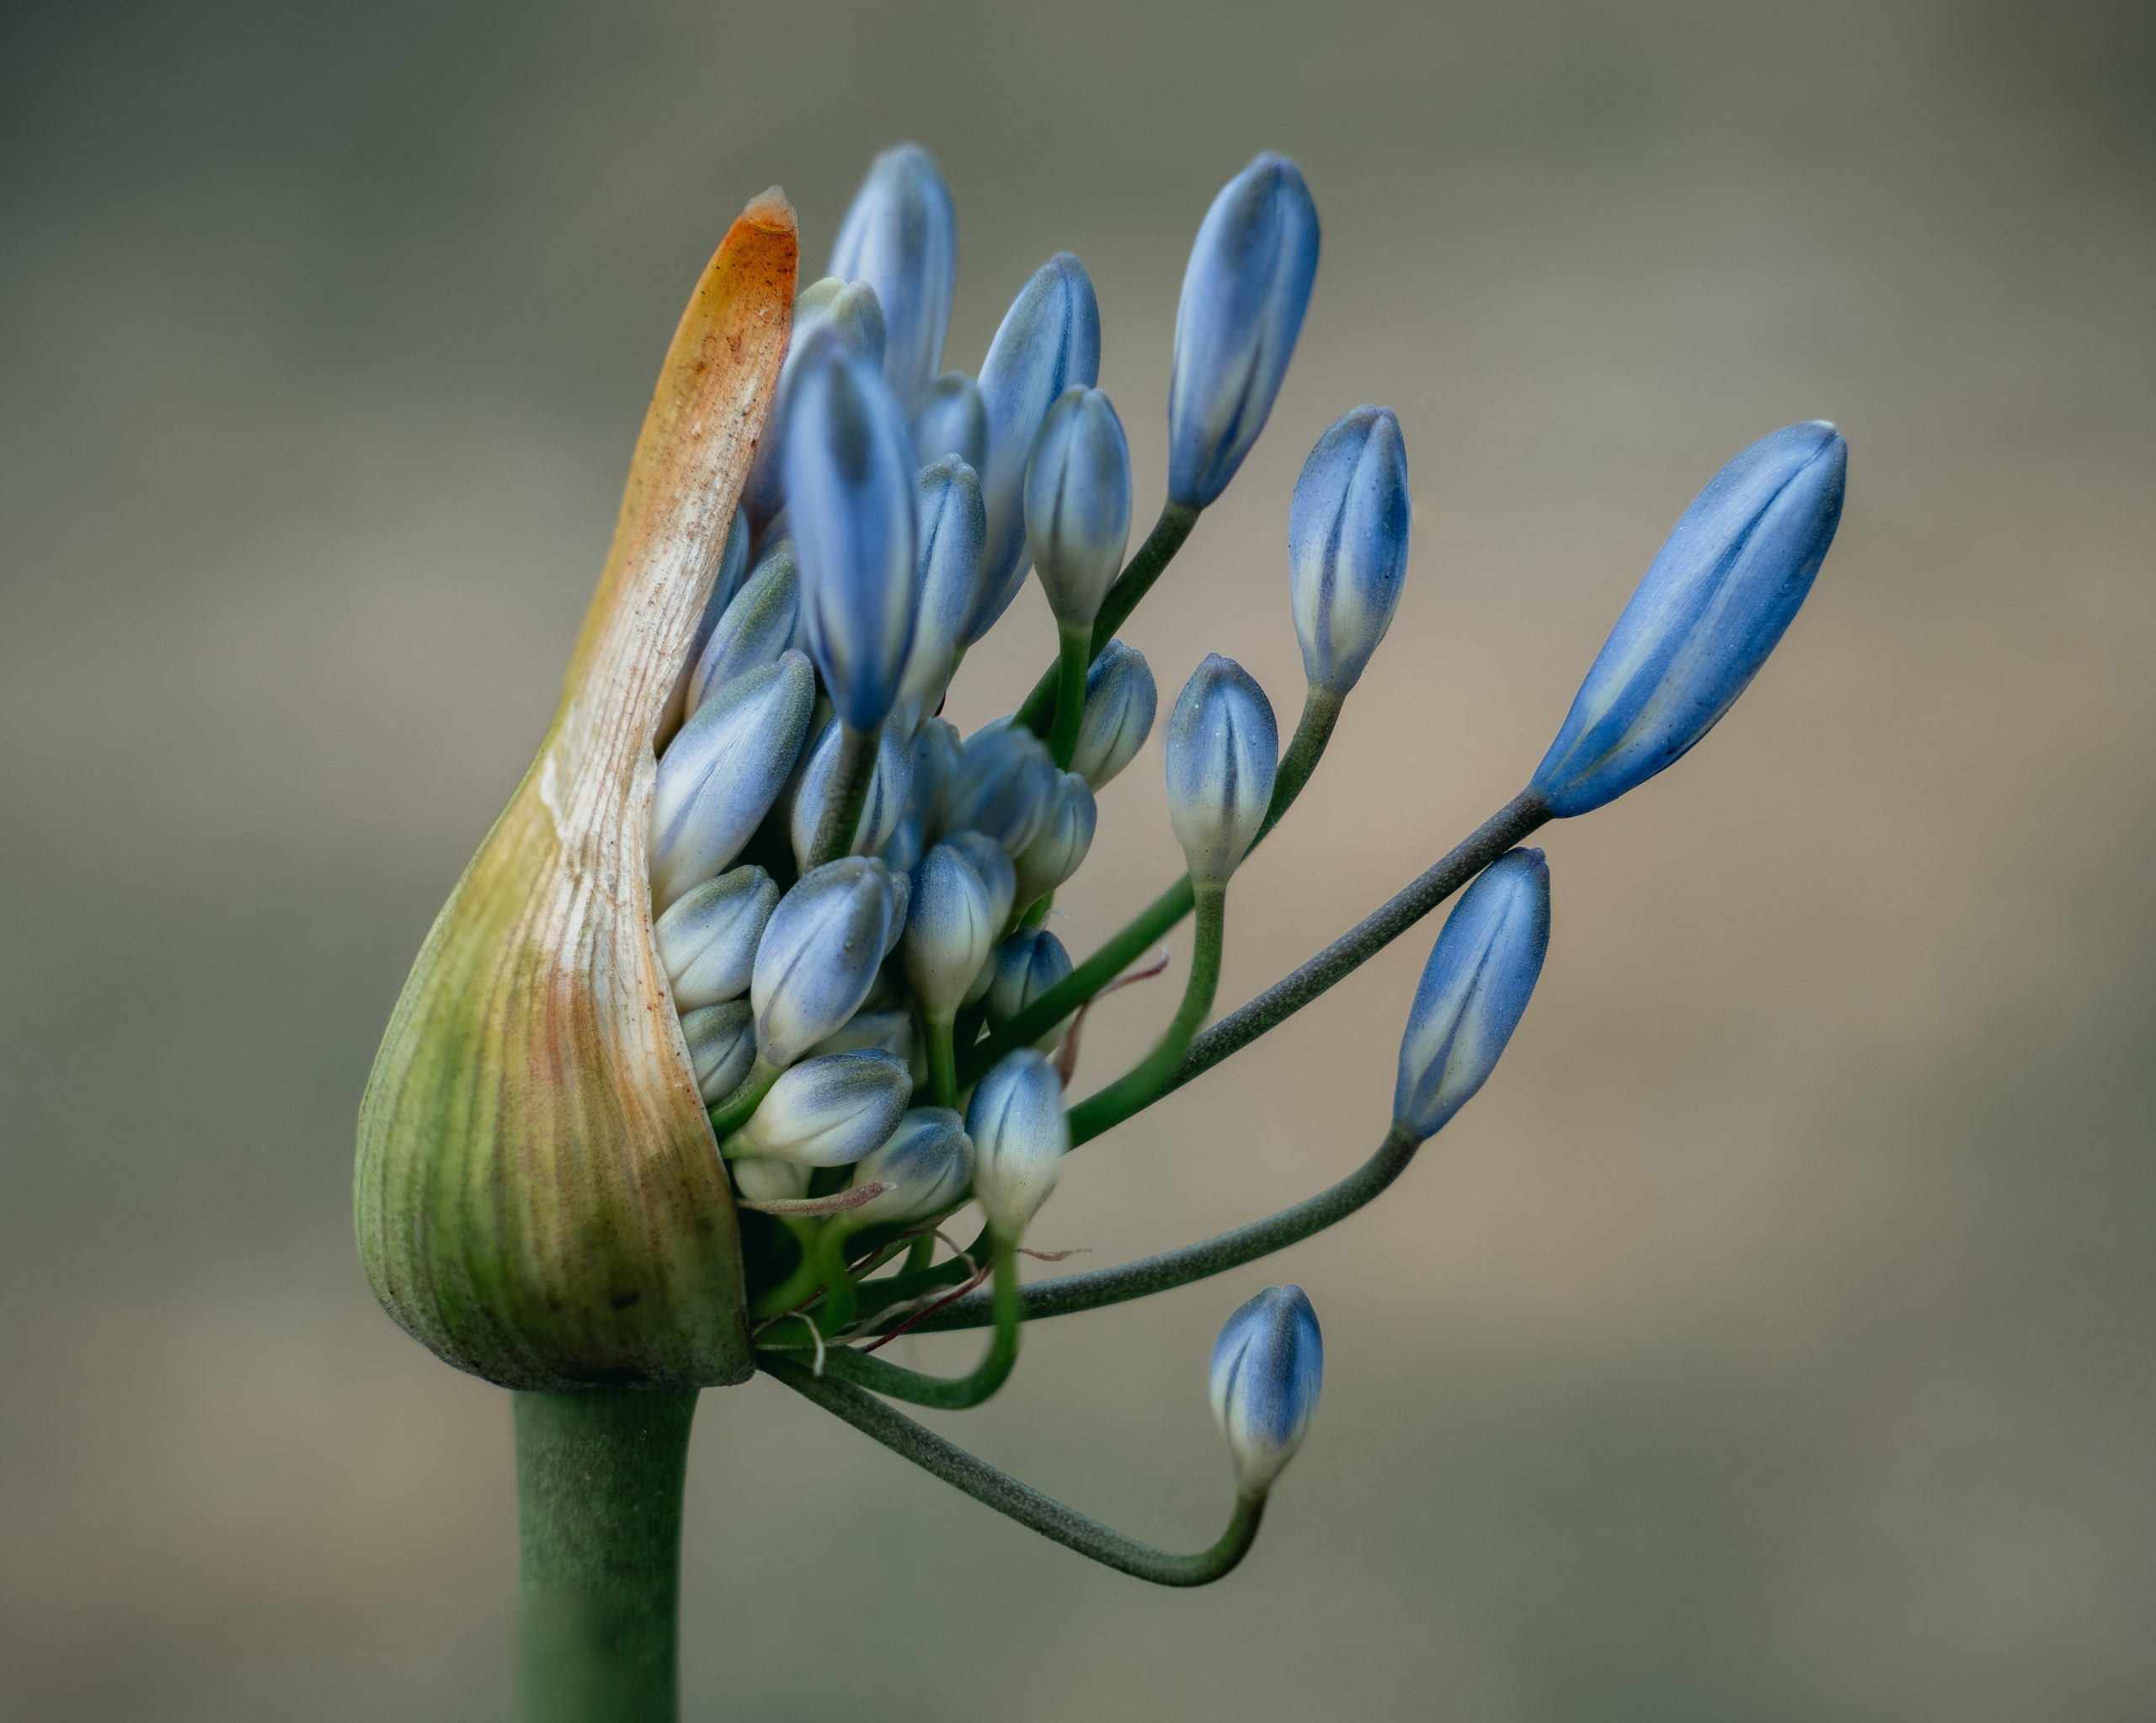 close up photo of blue flower 3686216 scaled